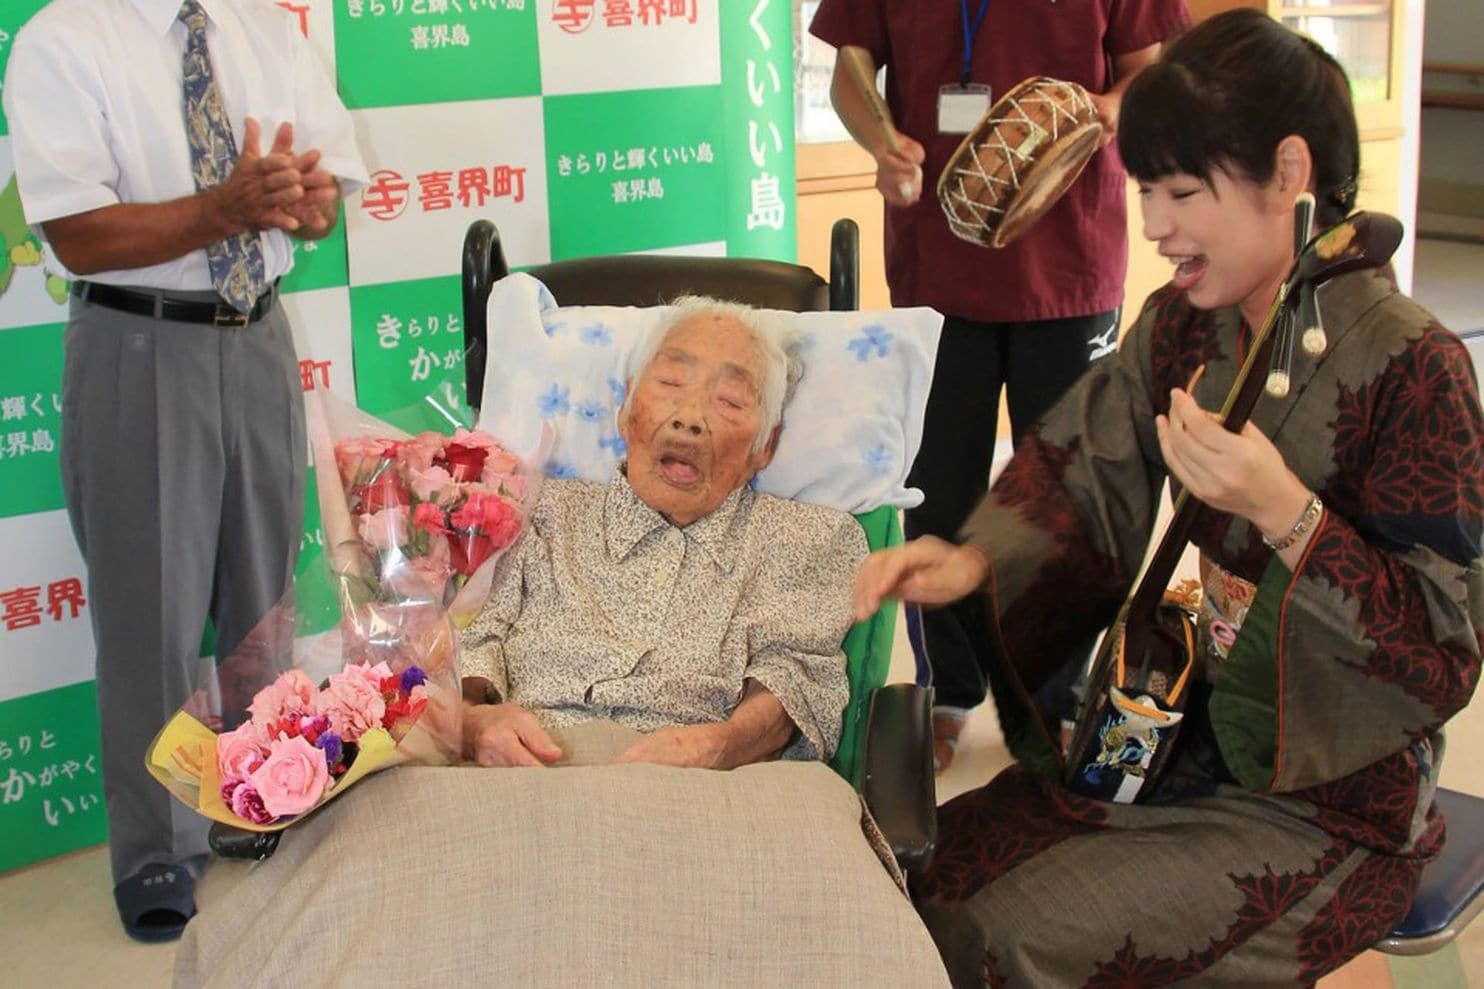 World's oldest person dies, Nabi Tajima at 117